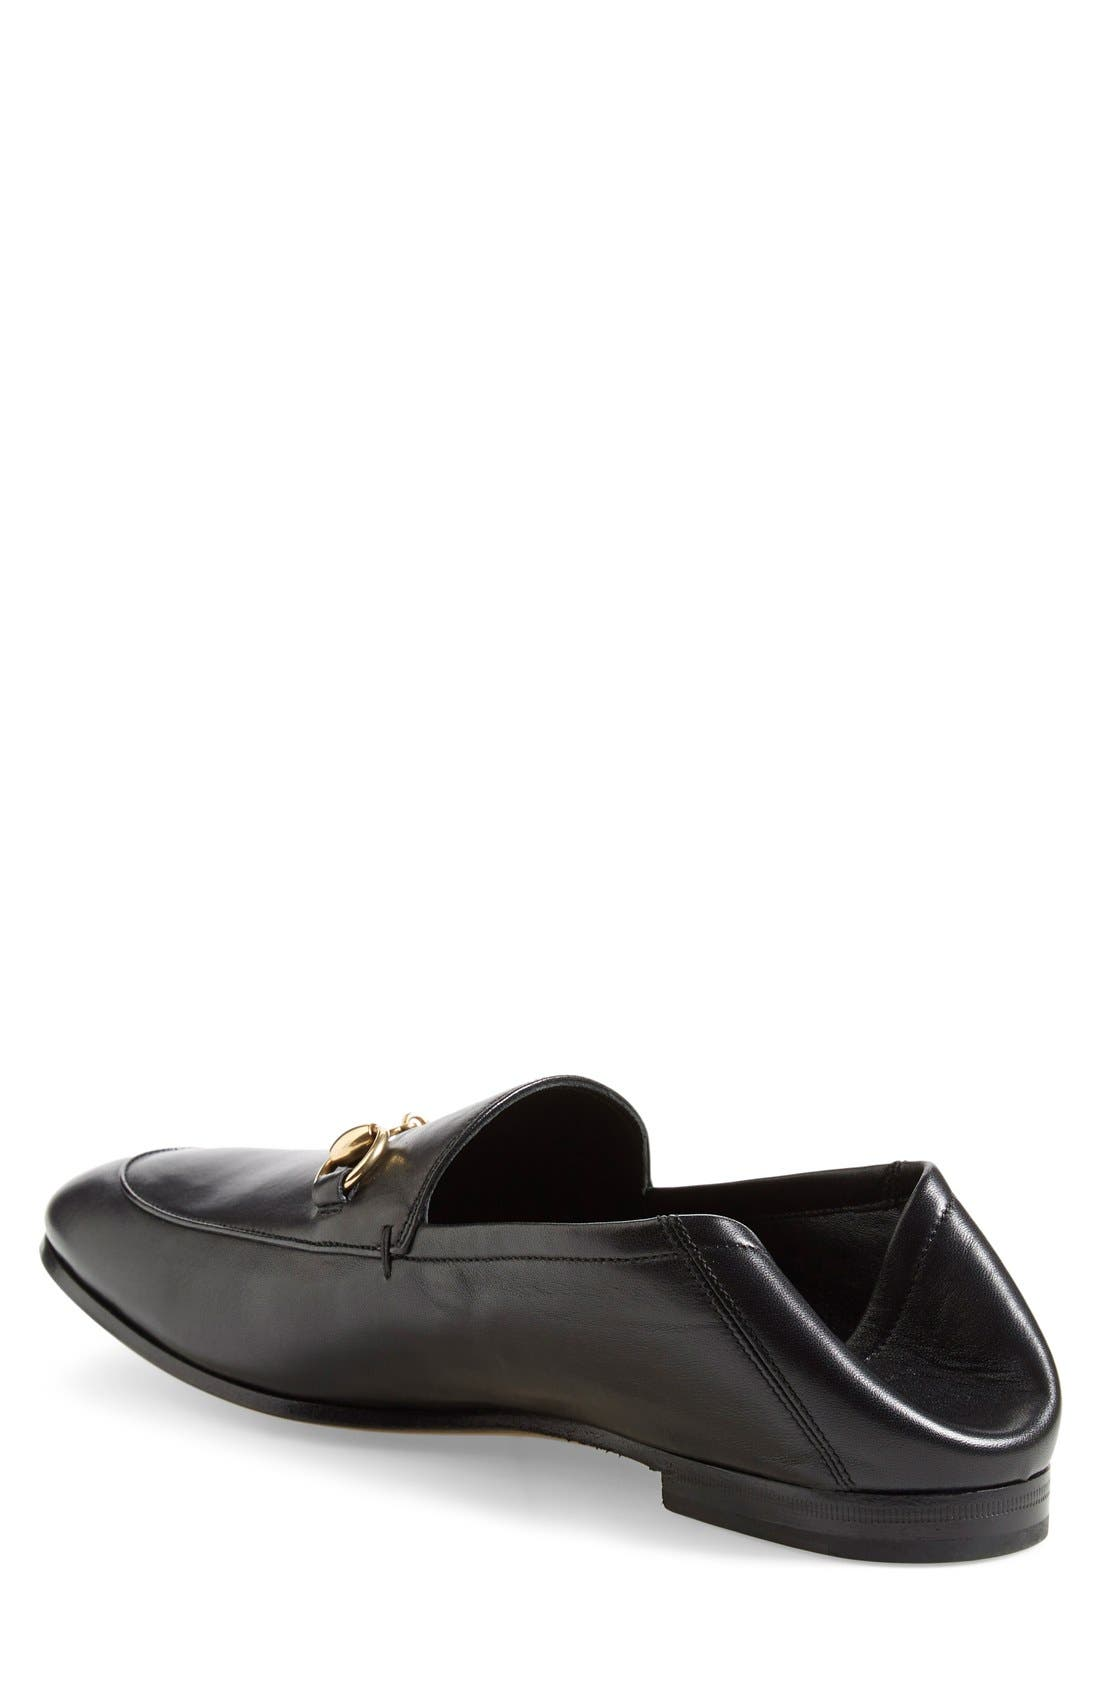 GUCCI, Brixton Leather Loafer, Alternate thumbnail 4, color, NERO LEATHER